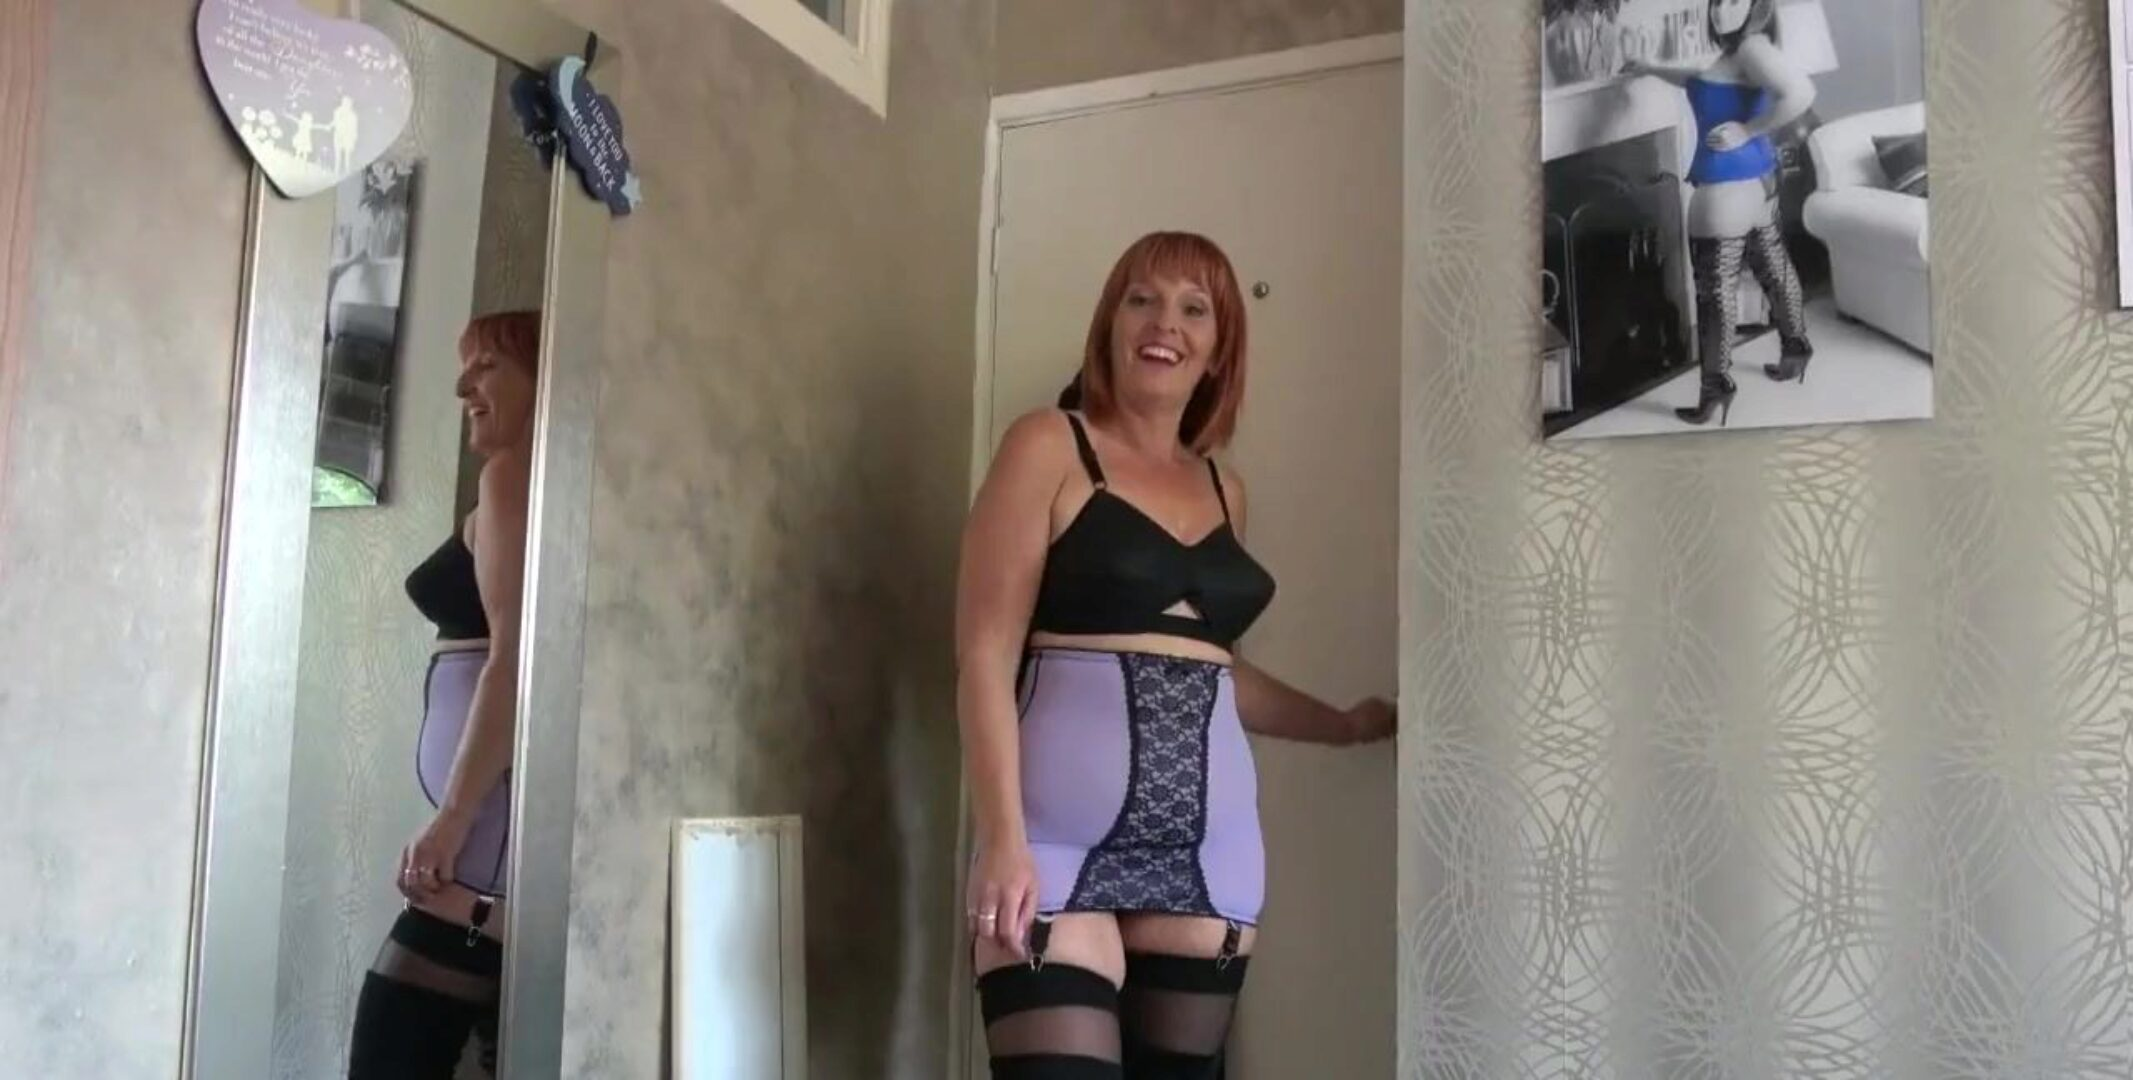 Beau Sexy Uk mother I'd like to fuck Slut, Free British HD Porn 59: xHamster Watch Beau Sexy Uk MILF Slut clip on xHamster, the giant HD orgy tube website with tons of free British Cougar & Creampie pornography videos